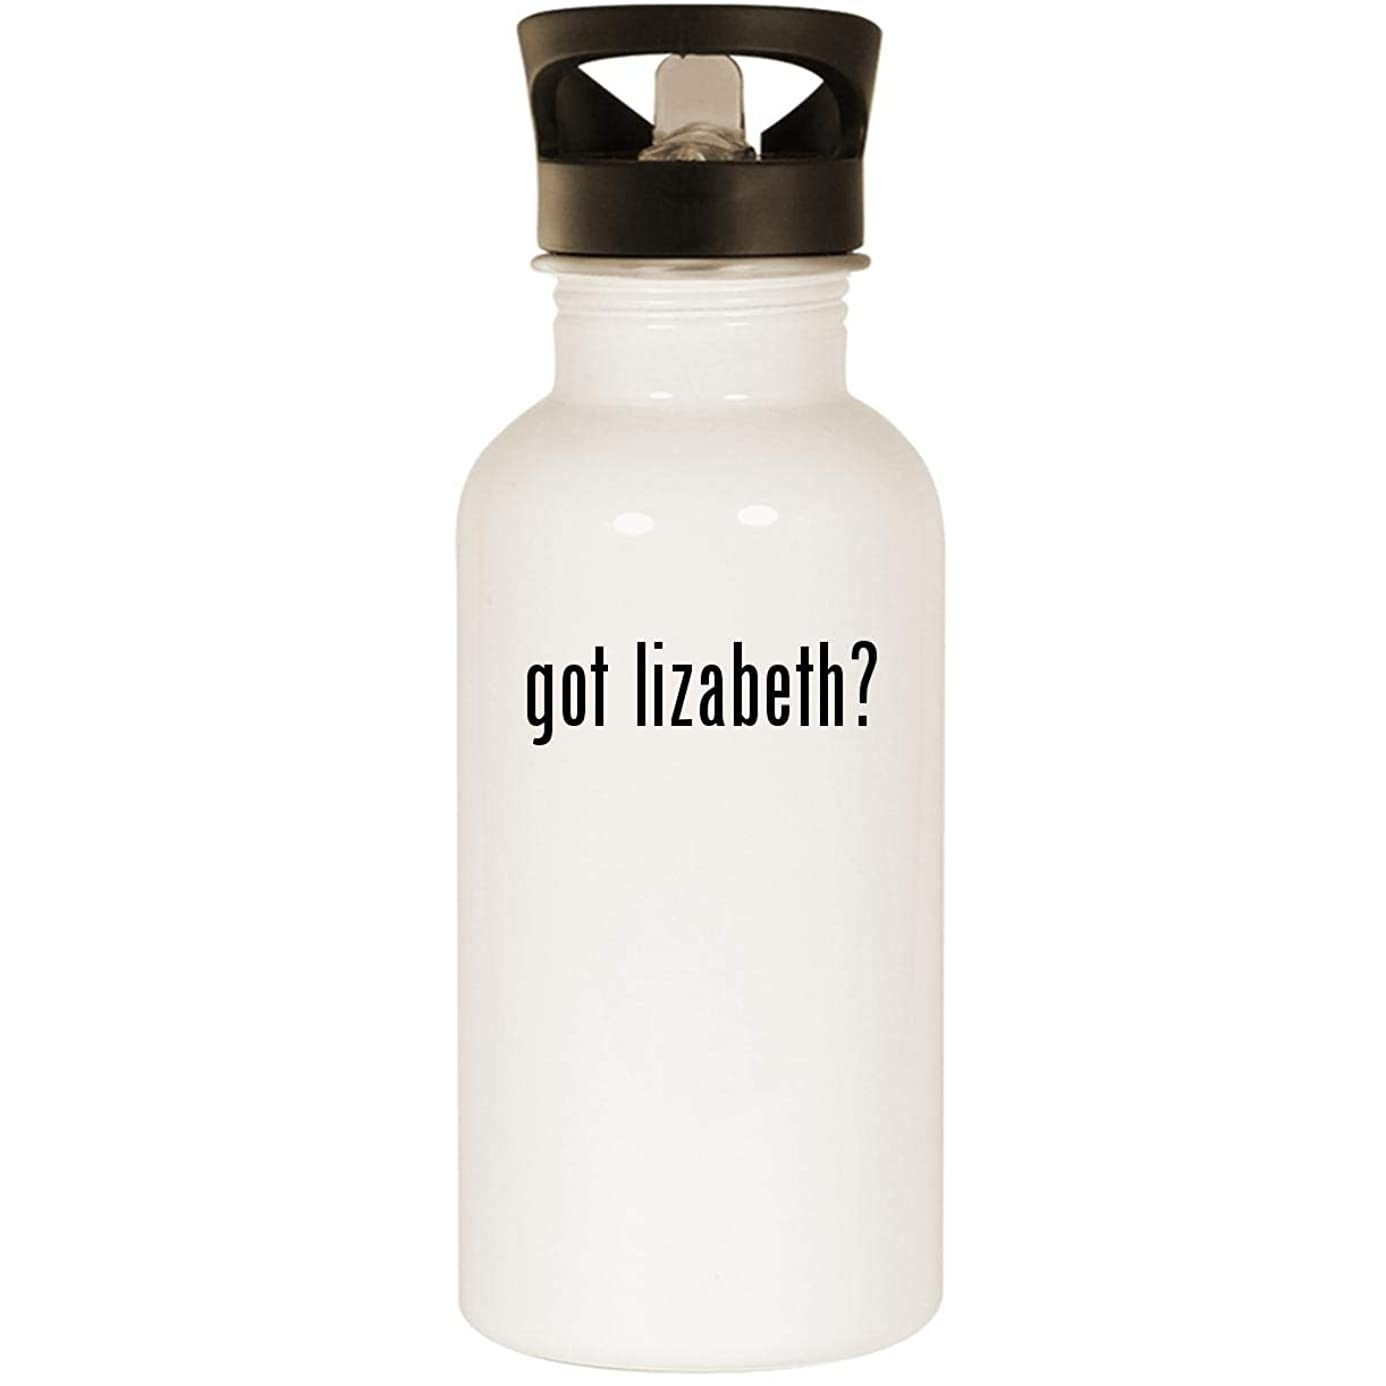 got lizabeth? - Stainless Steel 20oz Road Ready Water Bottle, White